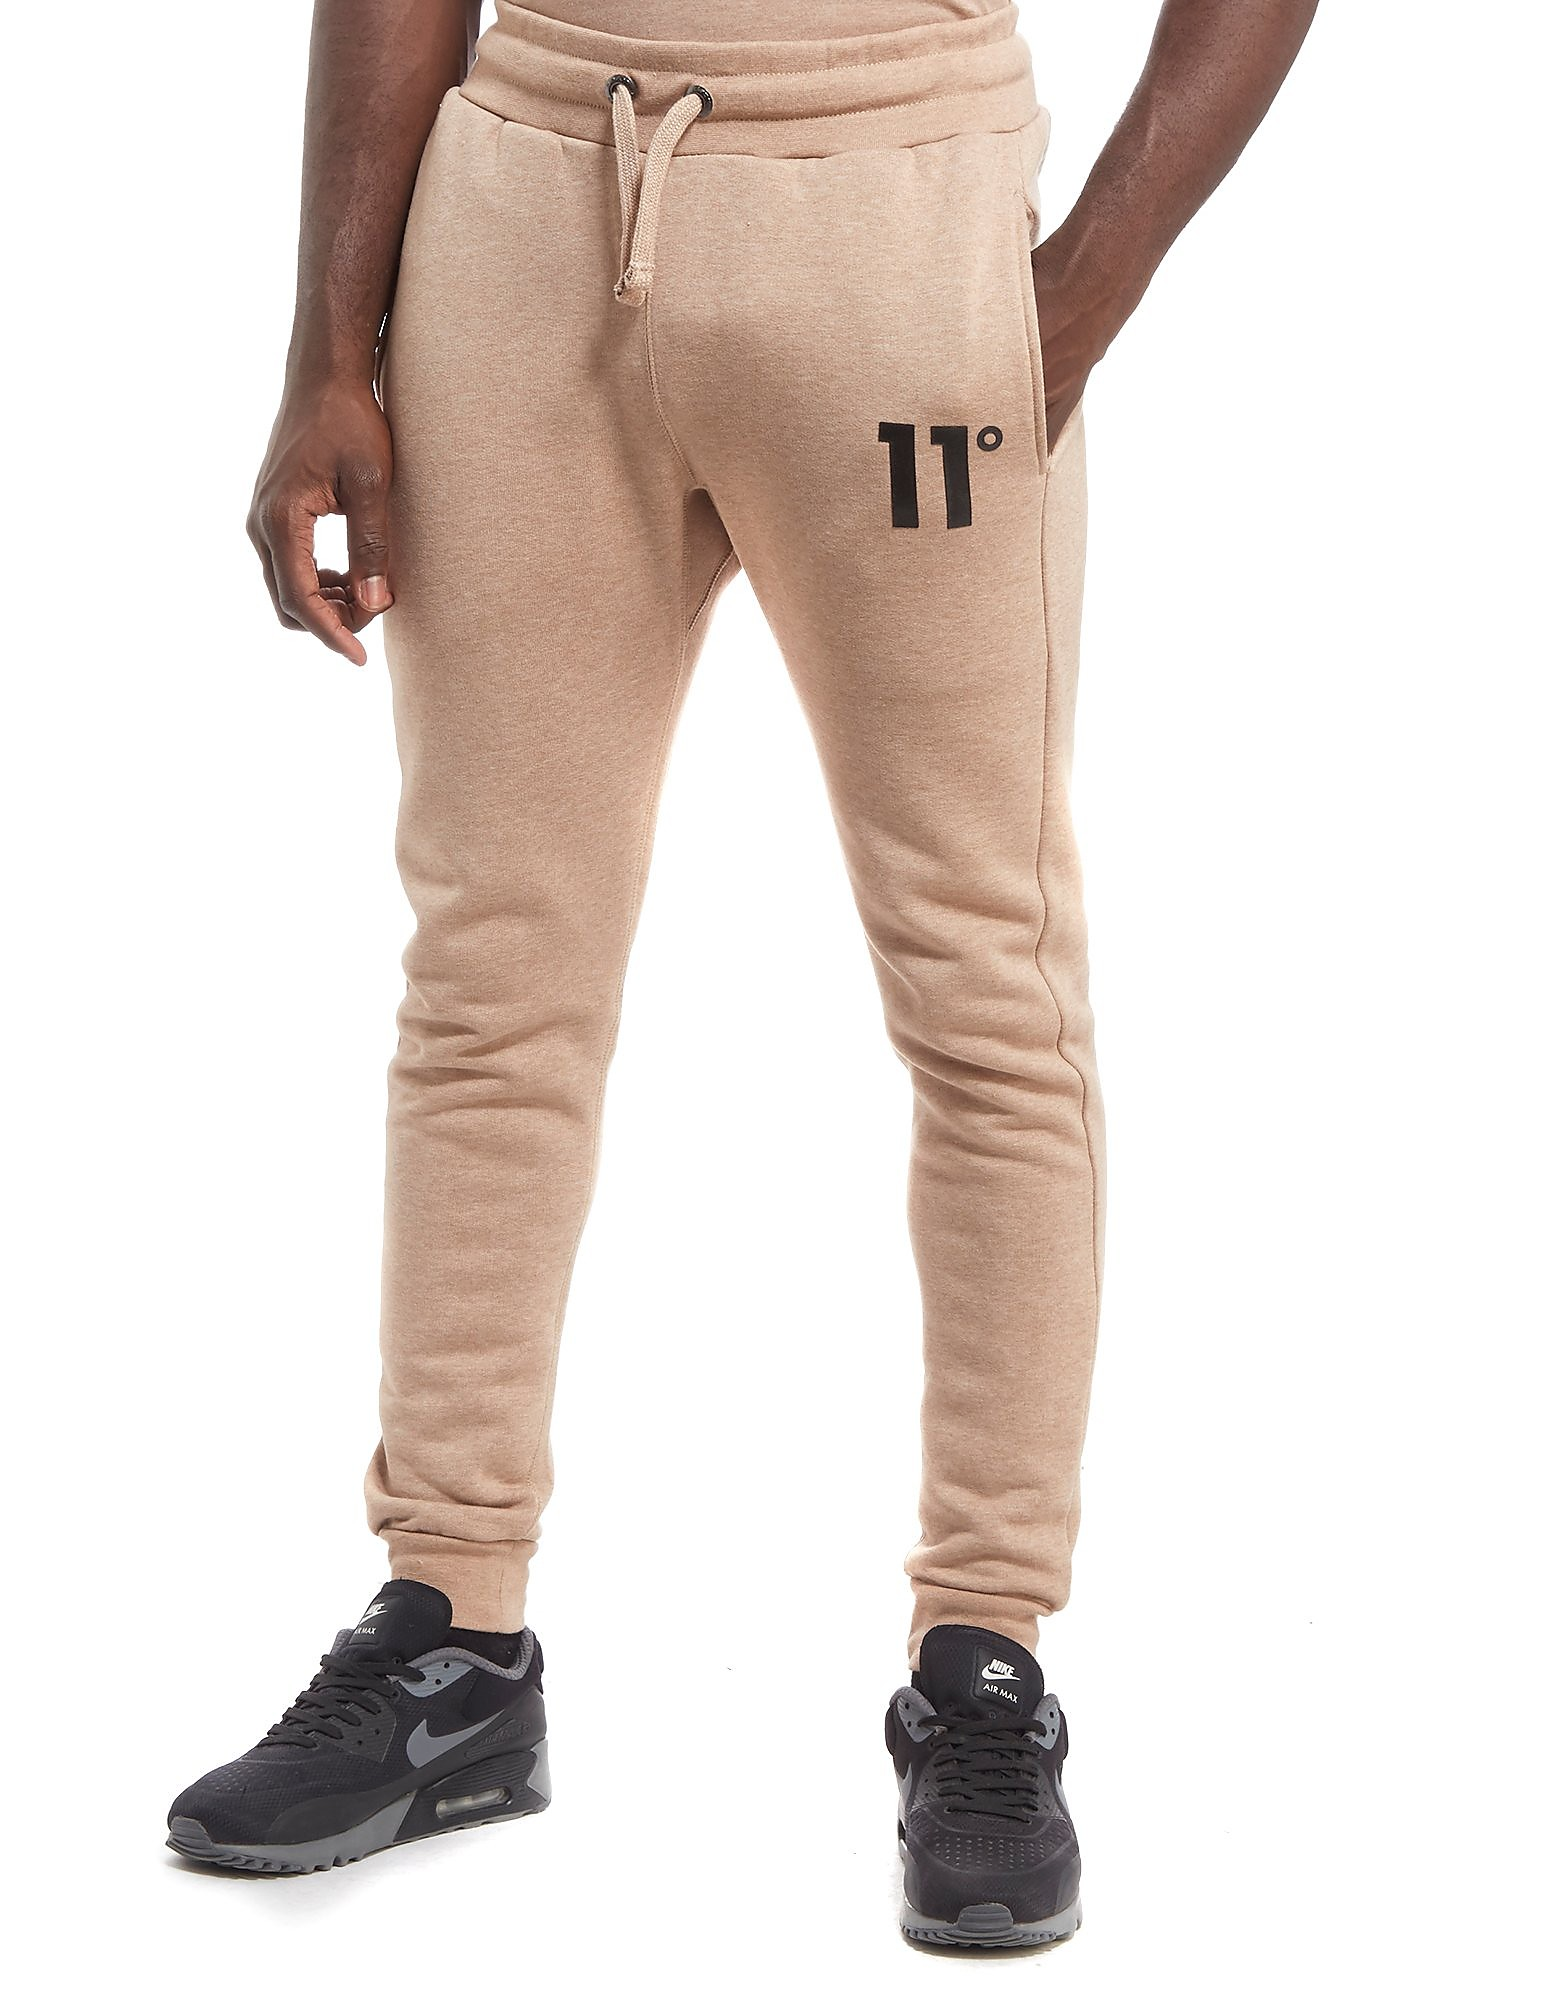 11 Degrees Core Fleece Joggers